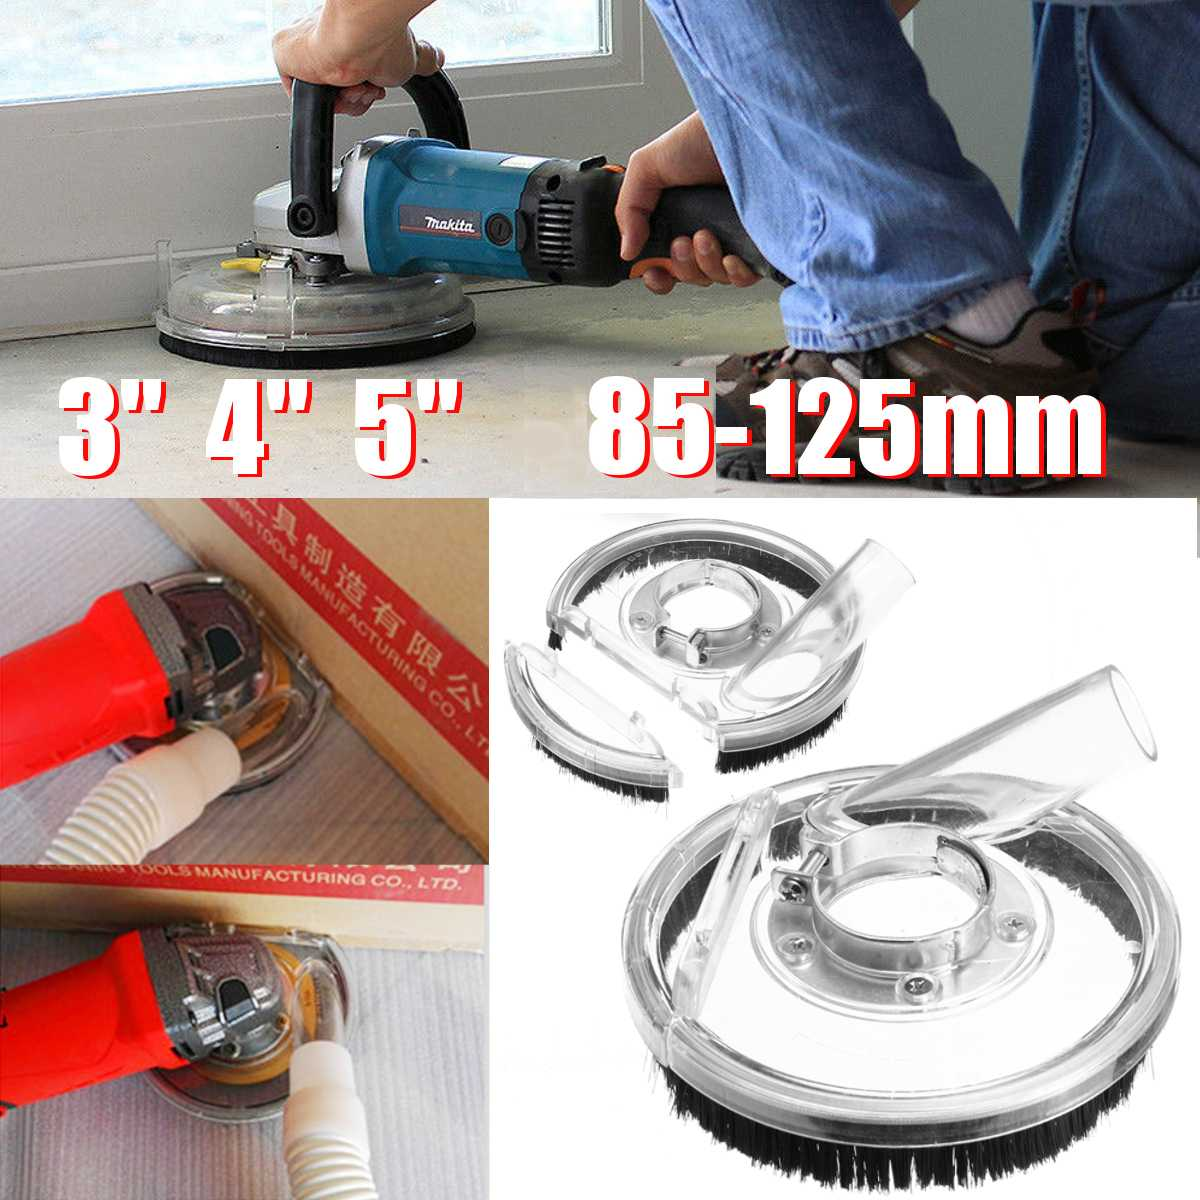 Dust Shroud Kit Dry Grinding Cover Tool For Angle Hand Grinder Clear 80-125mm Power Tool Accessories Vacuum Dust Cover